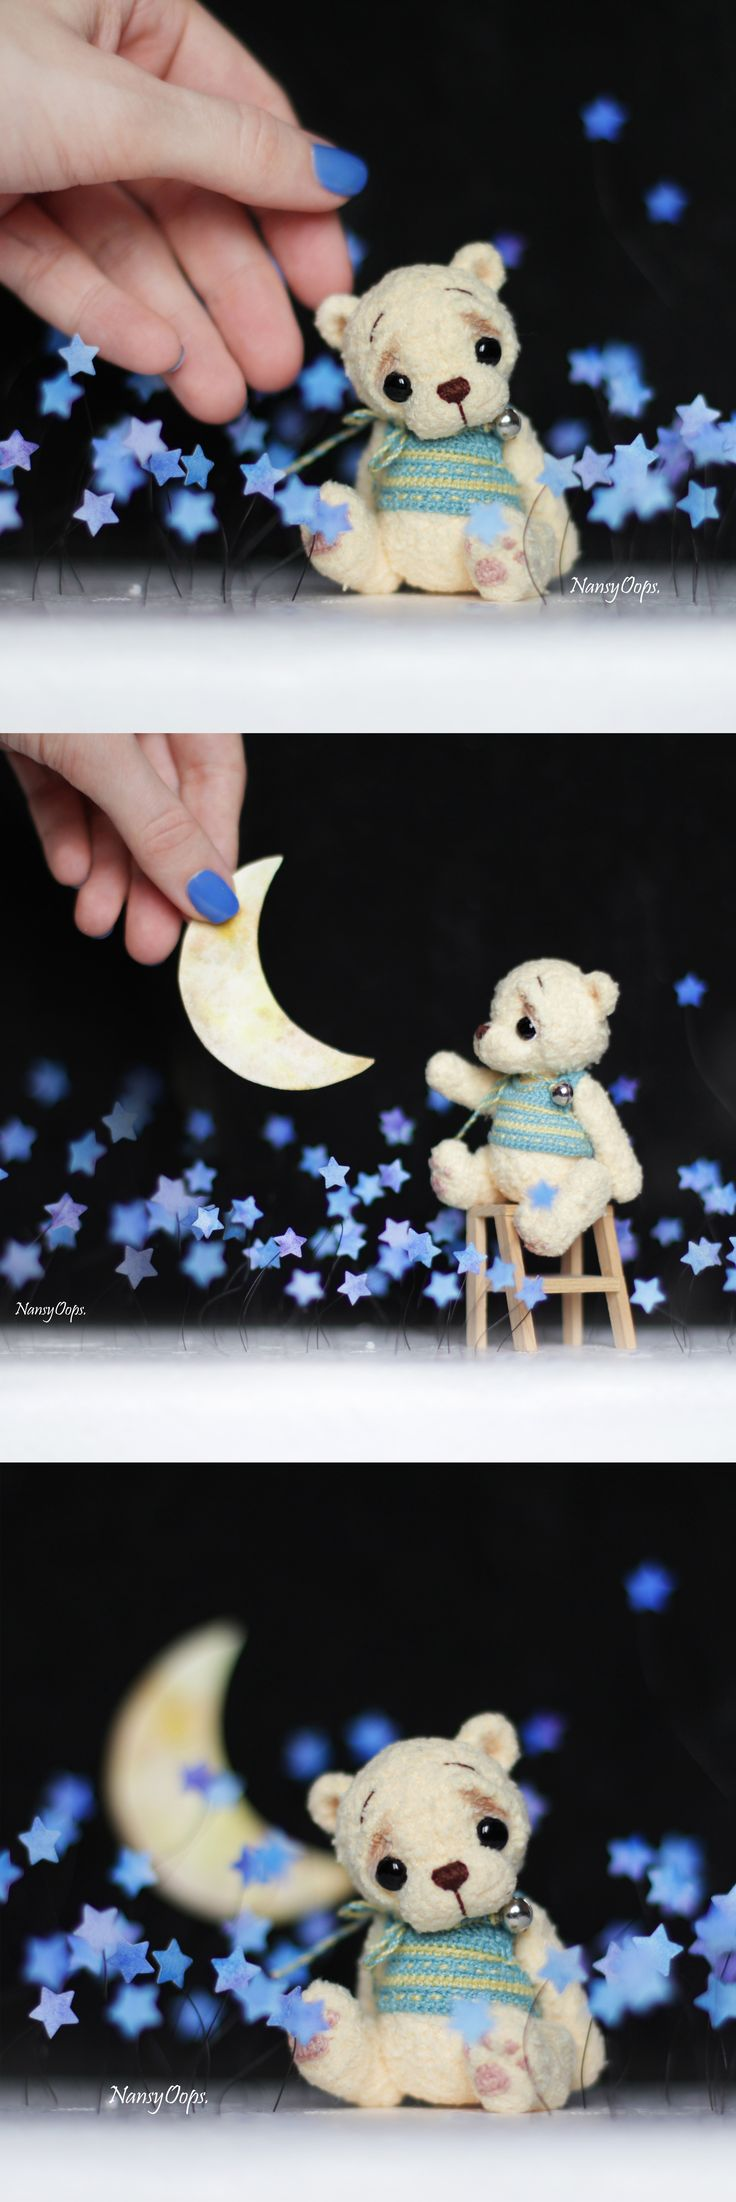 #dreams #teddybear #amigurumi #crochet #crocheting #toys #cute #bear #teddy #stars #night #knitting #miniature